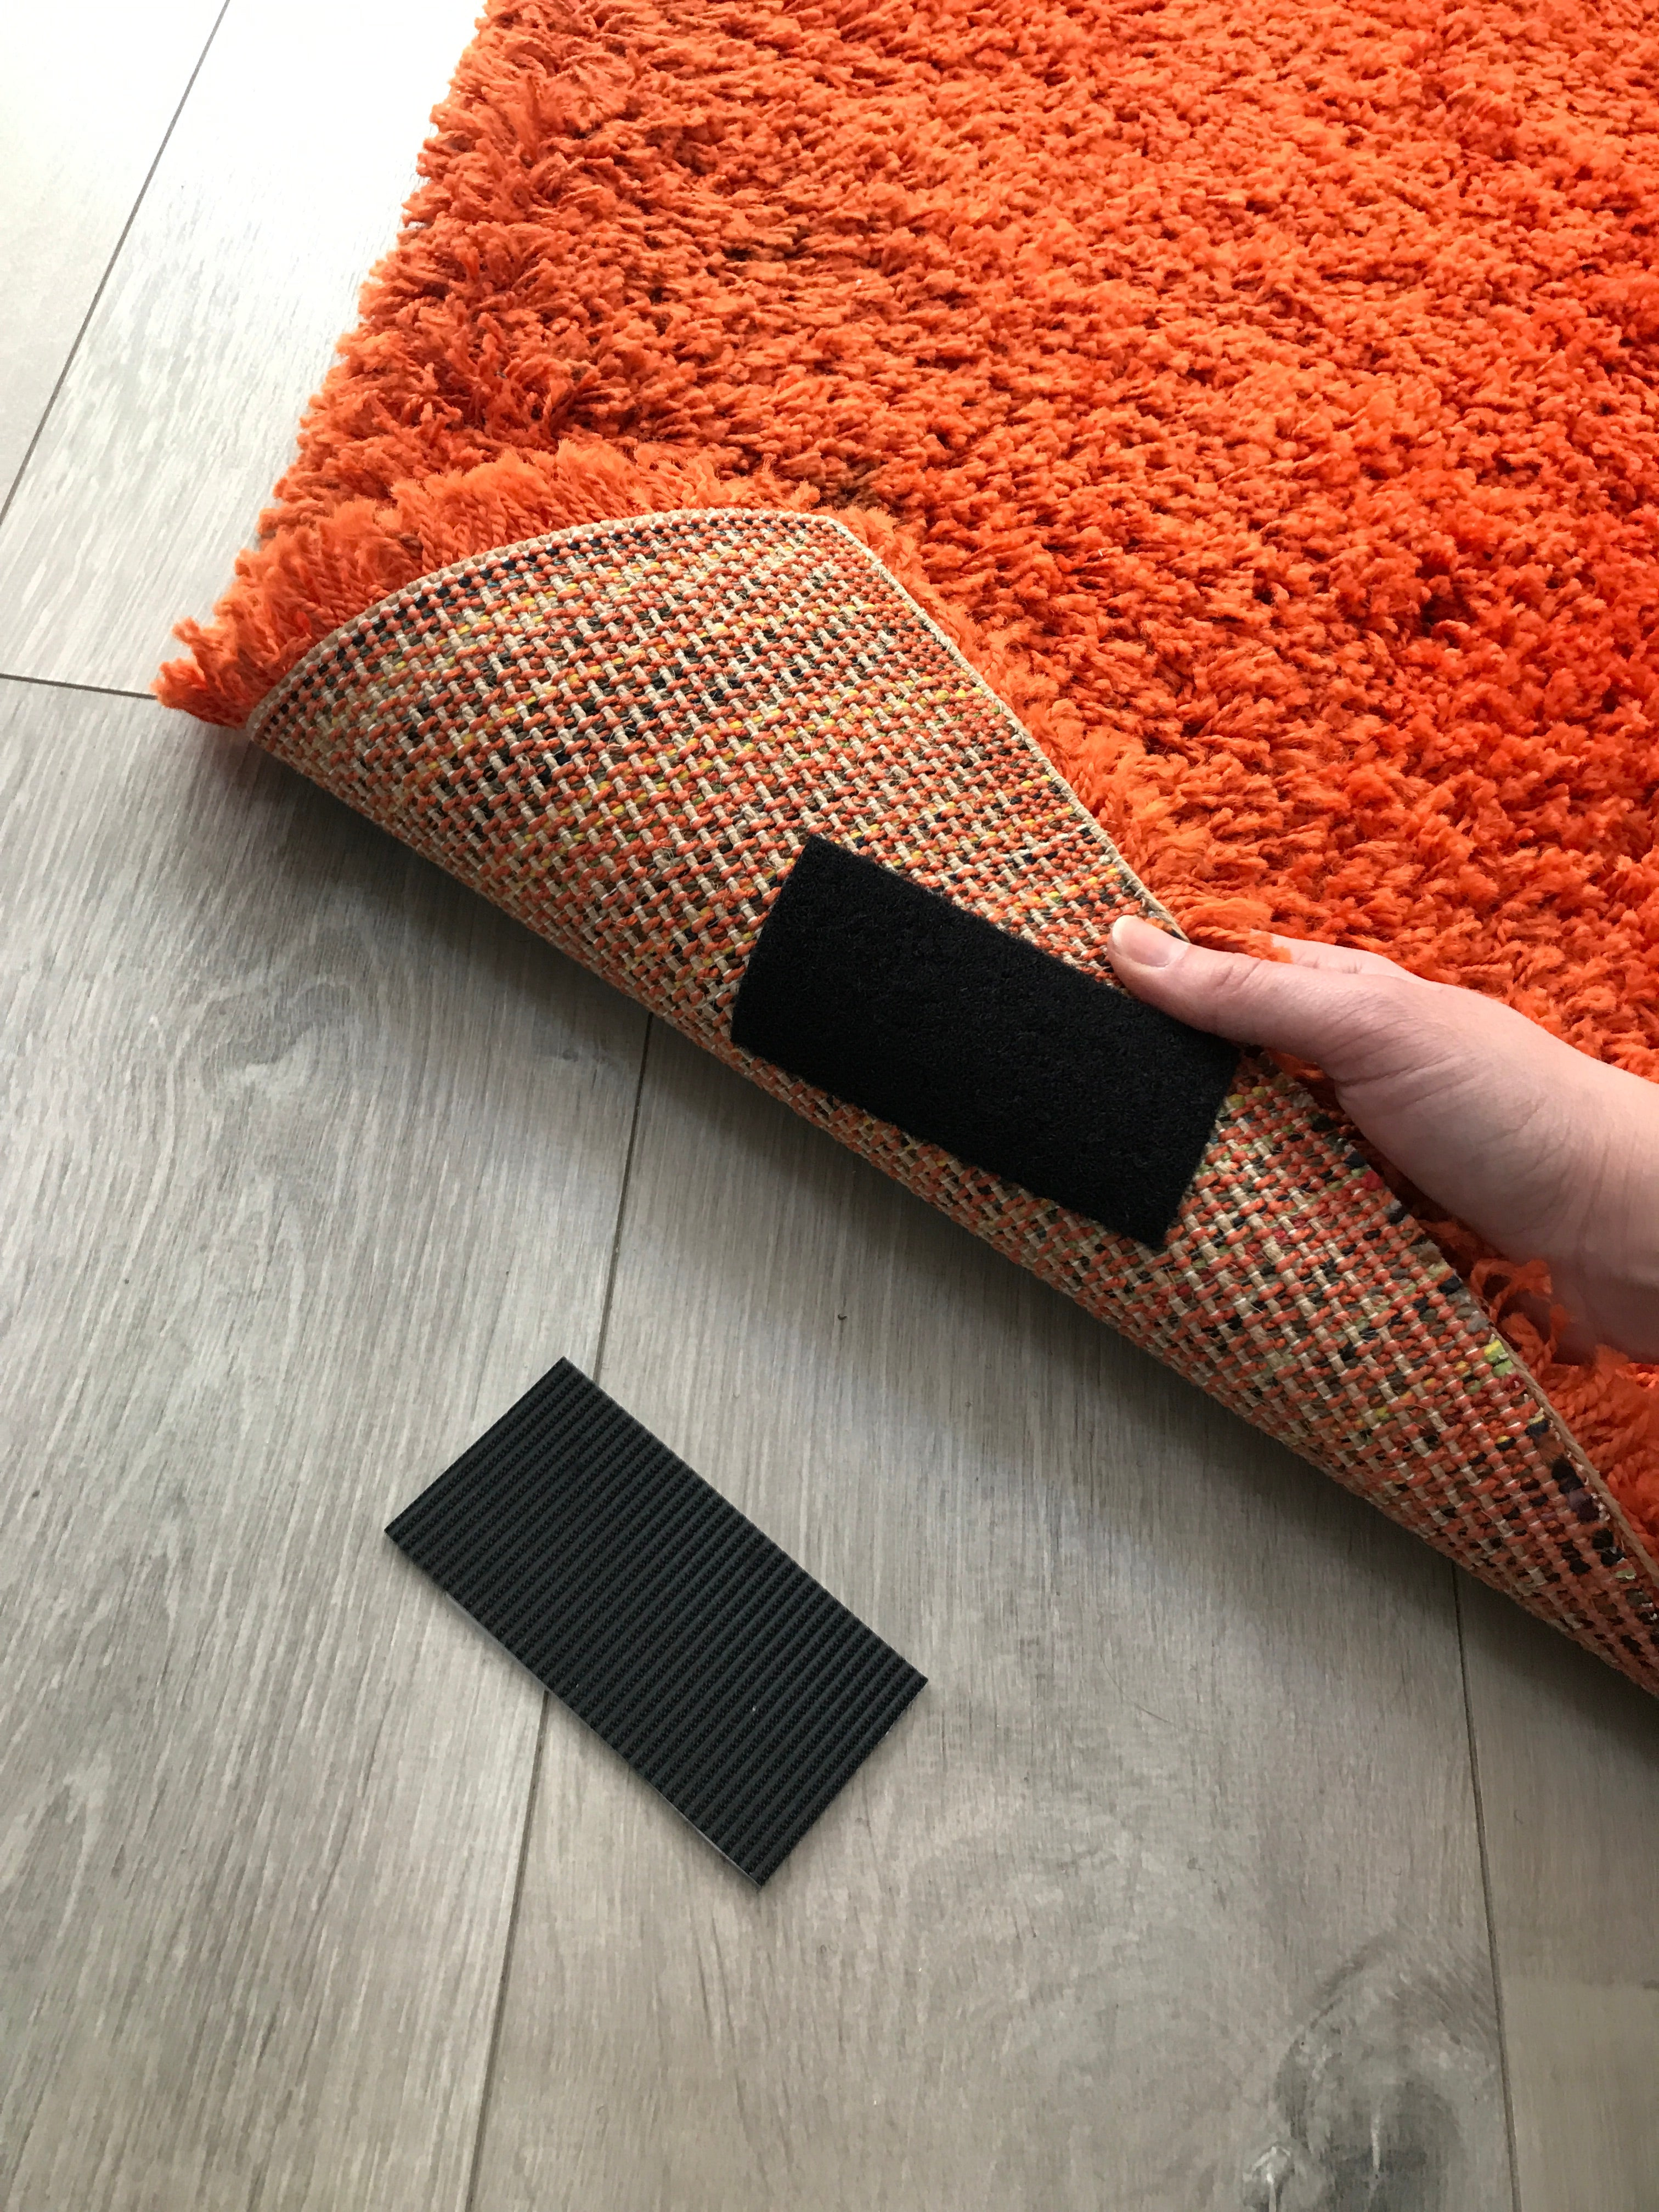 VELCRO® Brand Hack - Stop Rugs Slipping